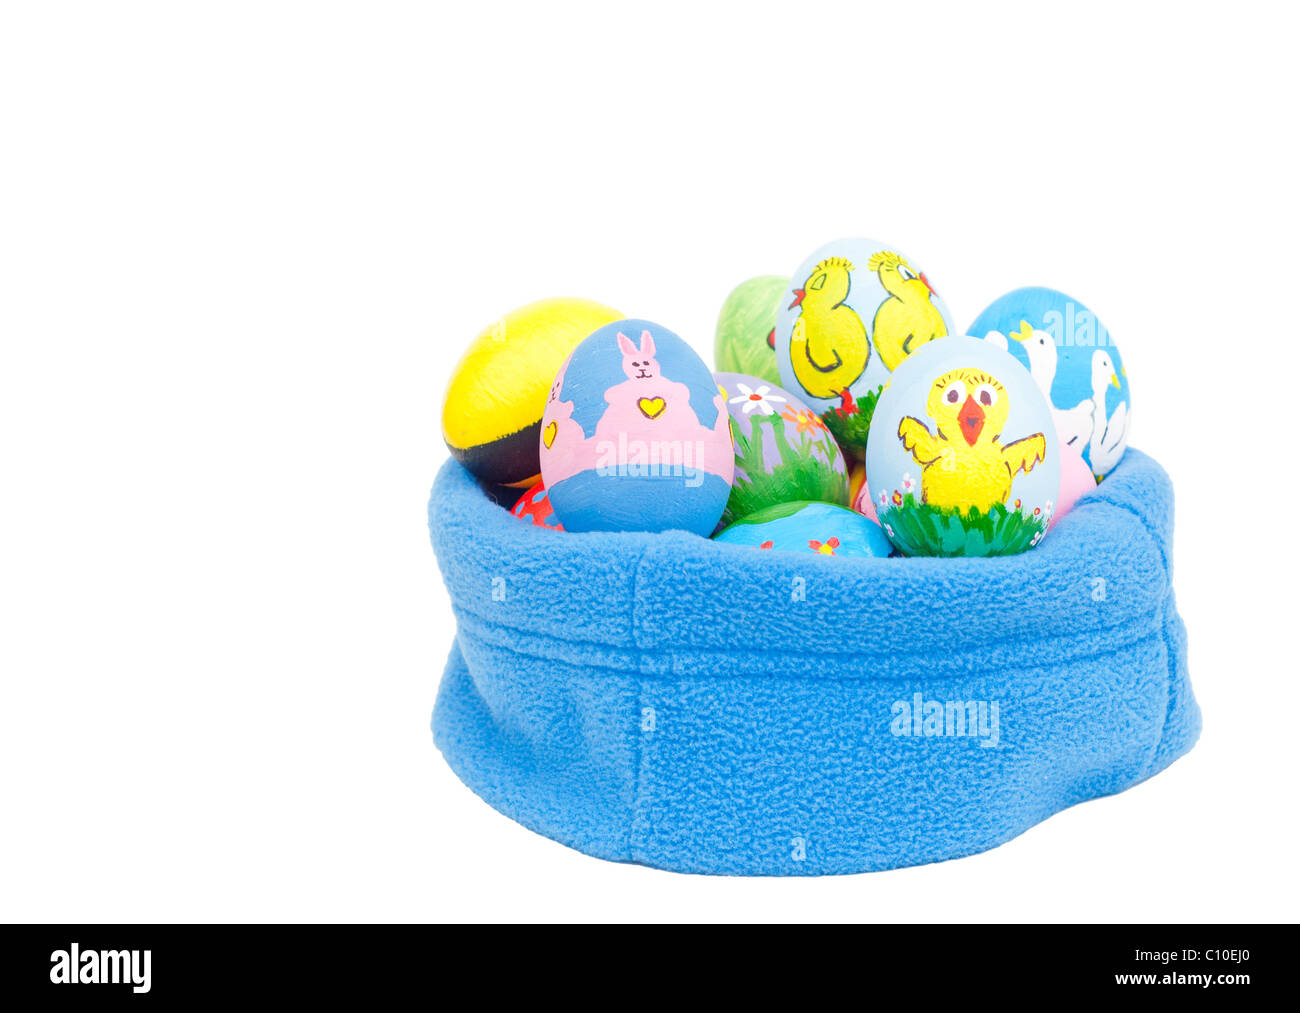 Delightfully colorful hand painted Easter eggs nested in blue fleece on white background - Stock Image